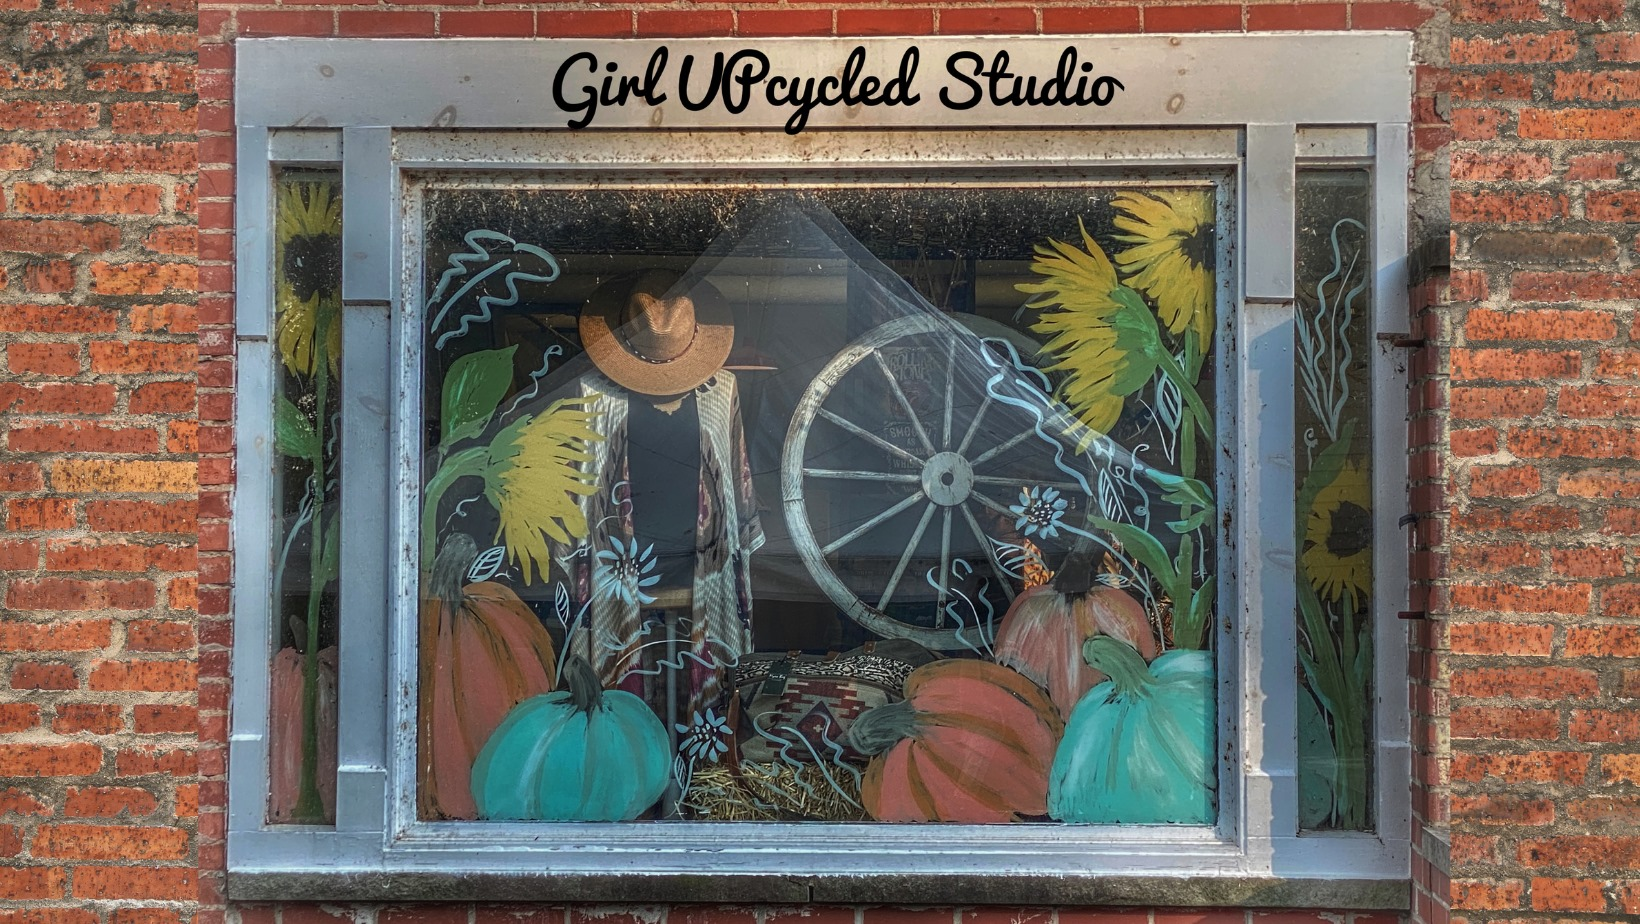 In Their Shop - meet Kelly Wiler Girl Upcycled